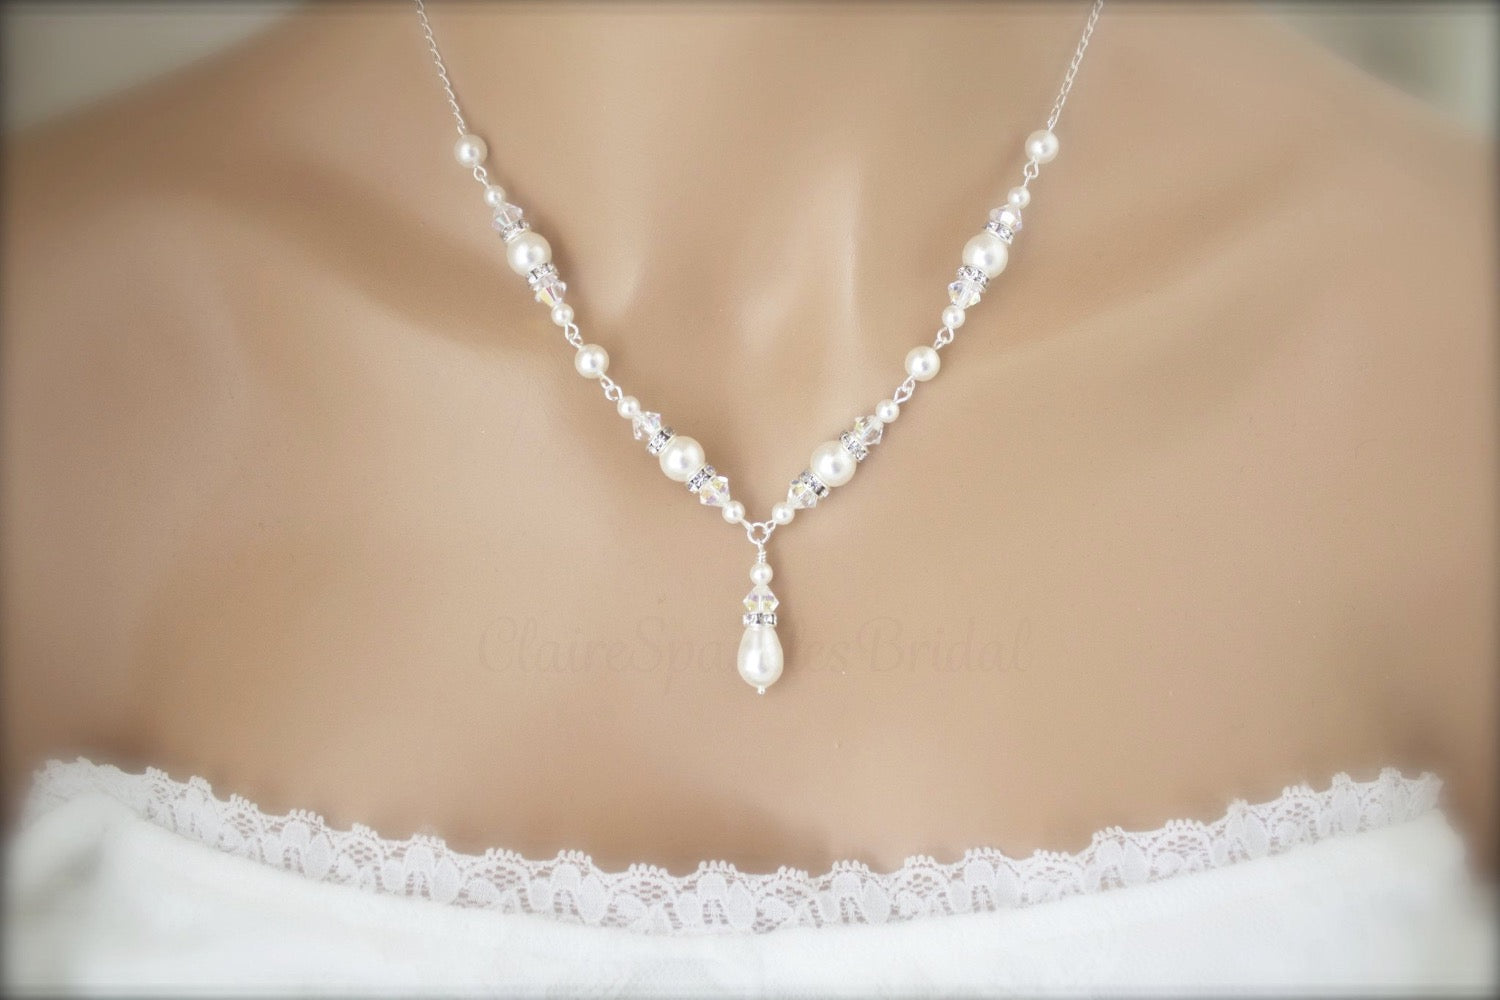 Pearl Necklace, Bracelet and Earring Sets for Brides - Clairesbridal - 4